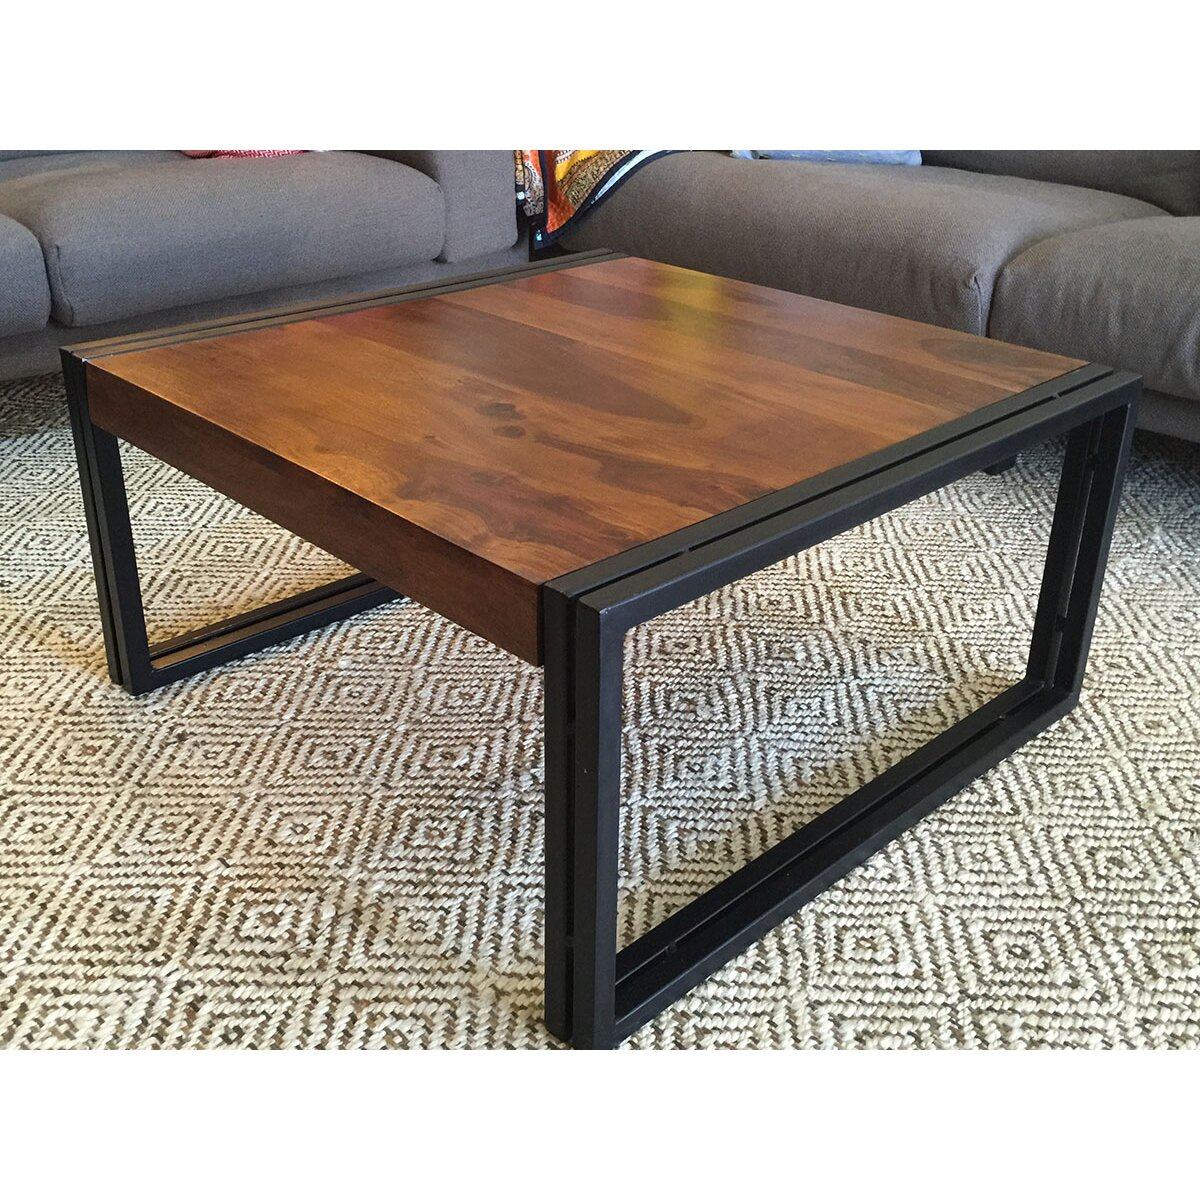 Square Wood Coffee Table: Timbergirl Coffee Table & Reviews